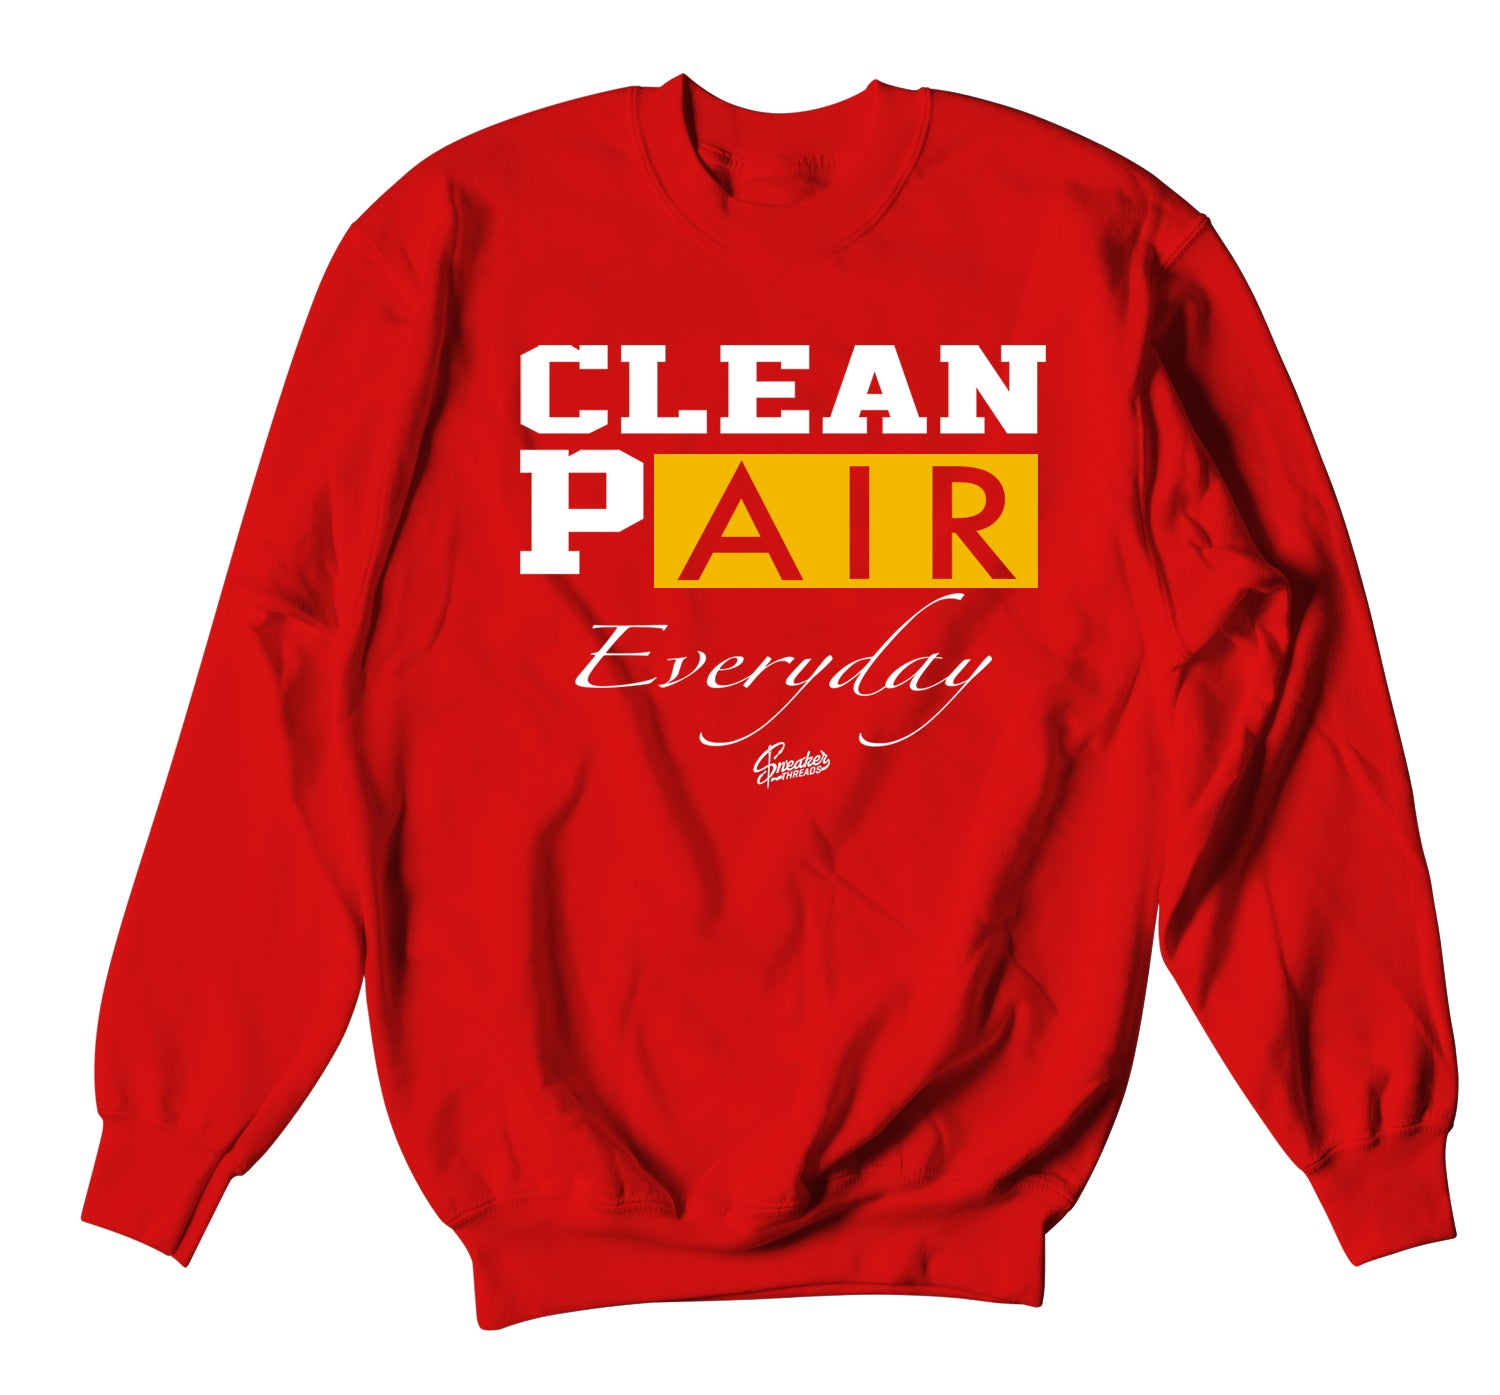 All Star 2020 Trophies Sweater  - Everyday - Red